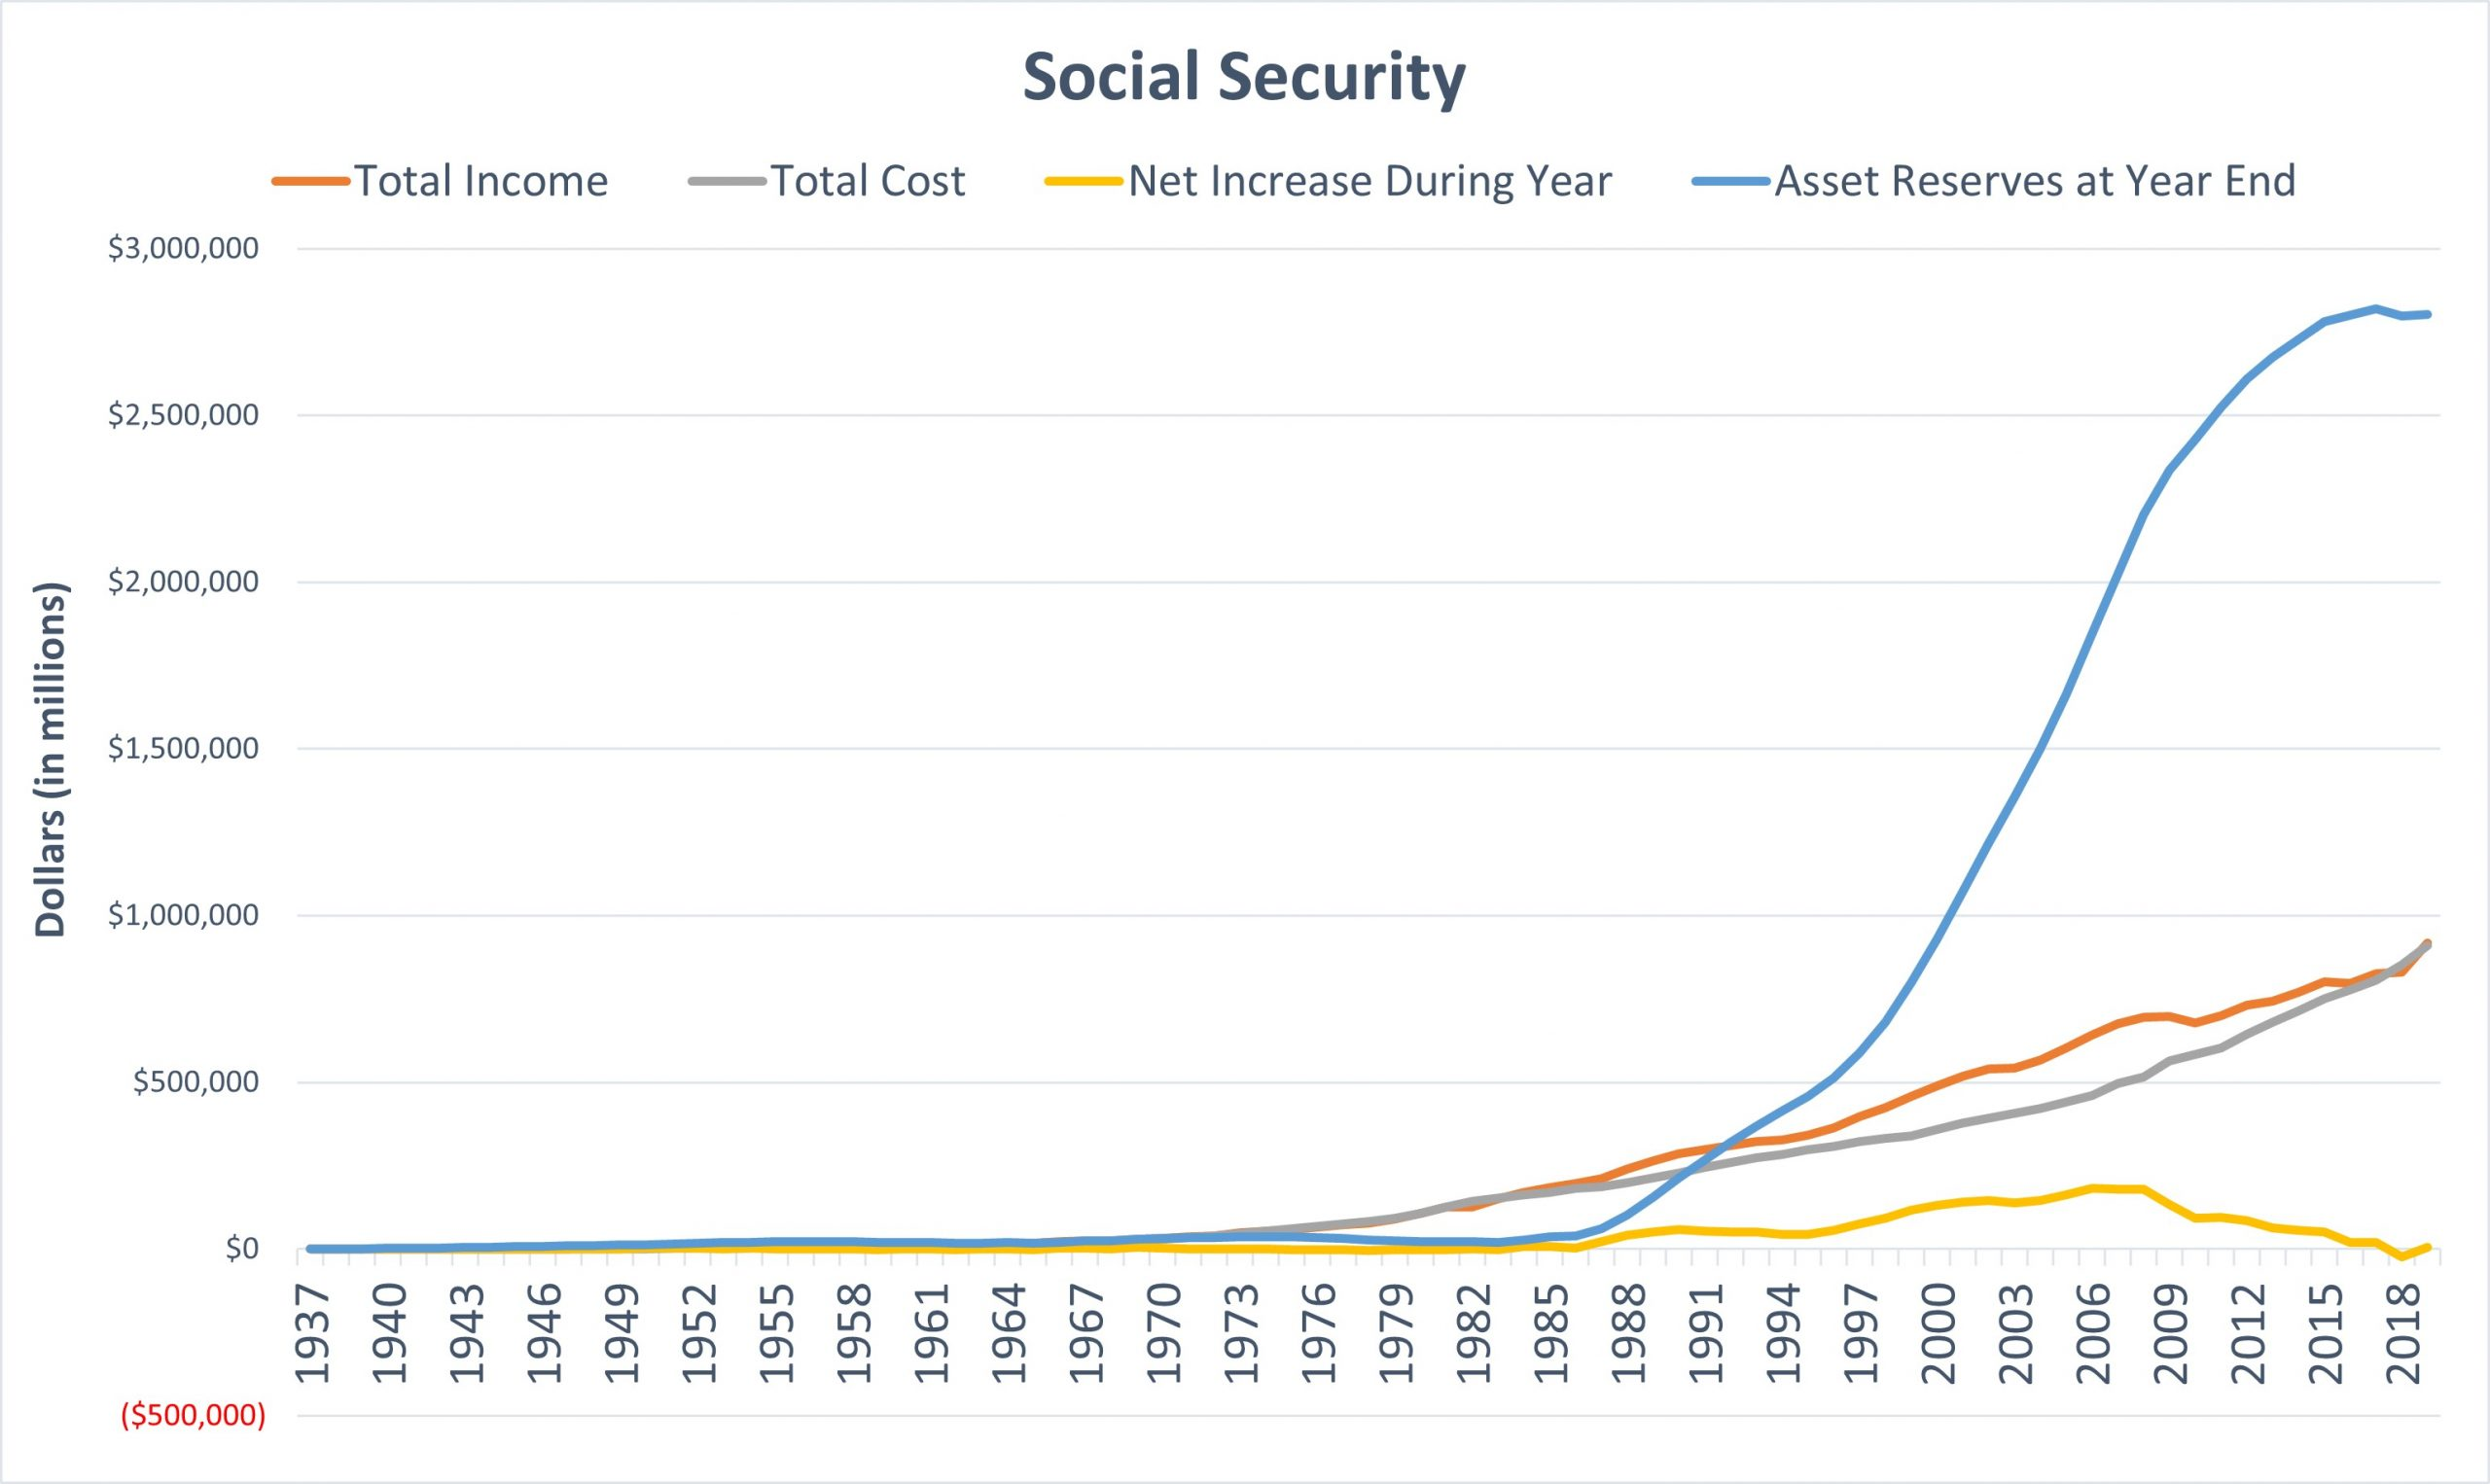 Chart of social security income, costs, and reserves